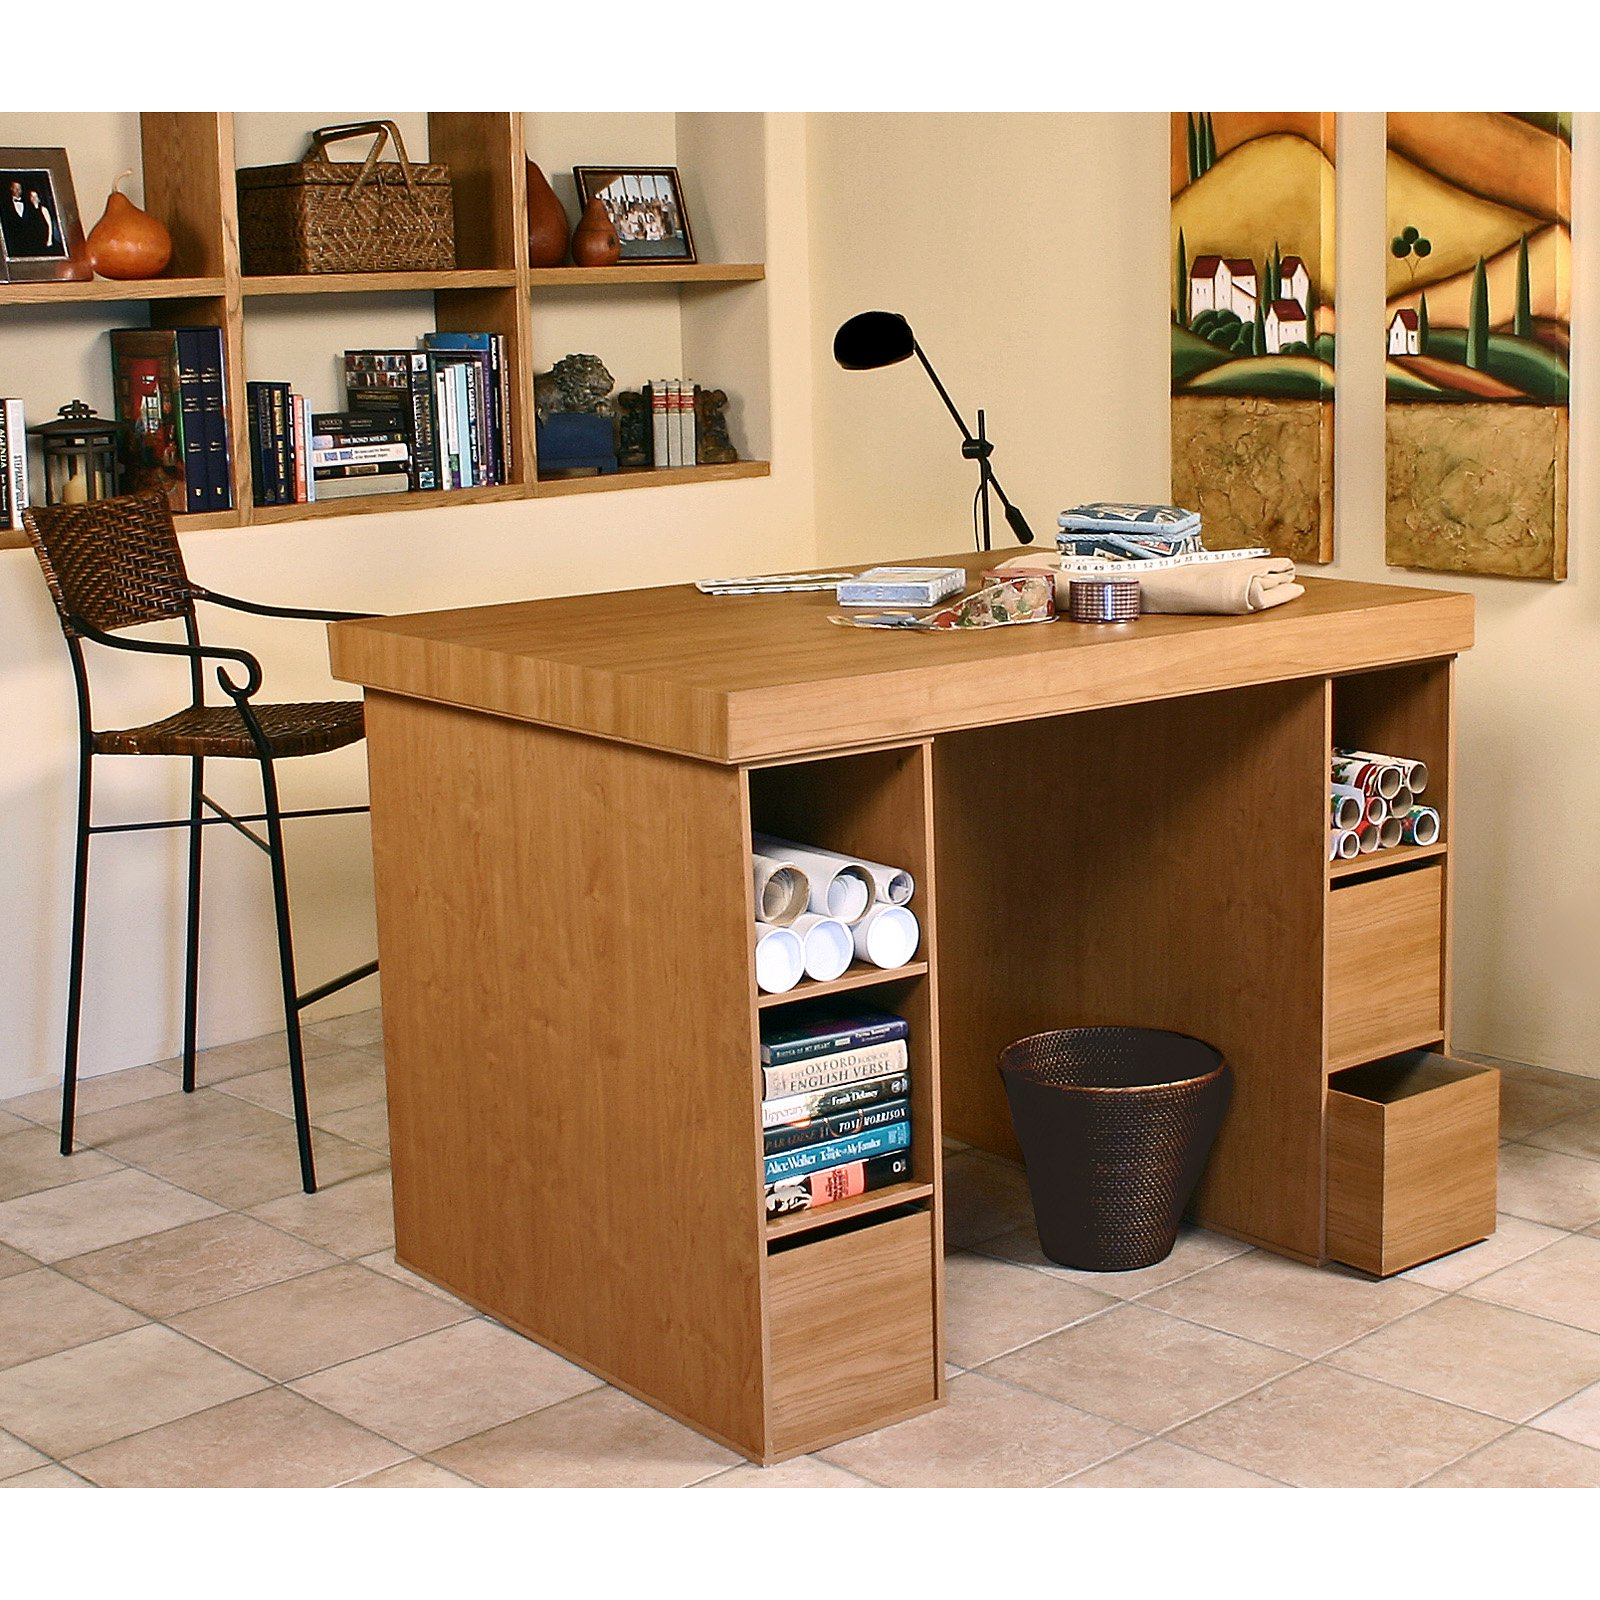 Venture Horizon Project Center Desk with 2 Three Bin Cabinets